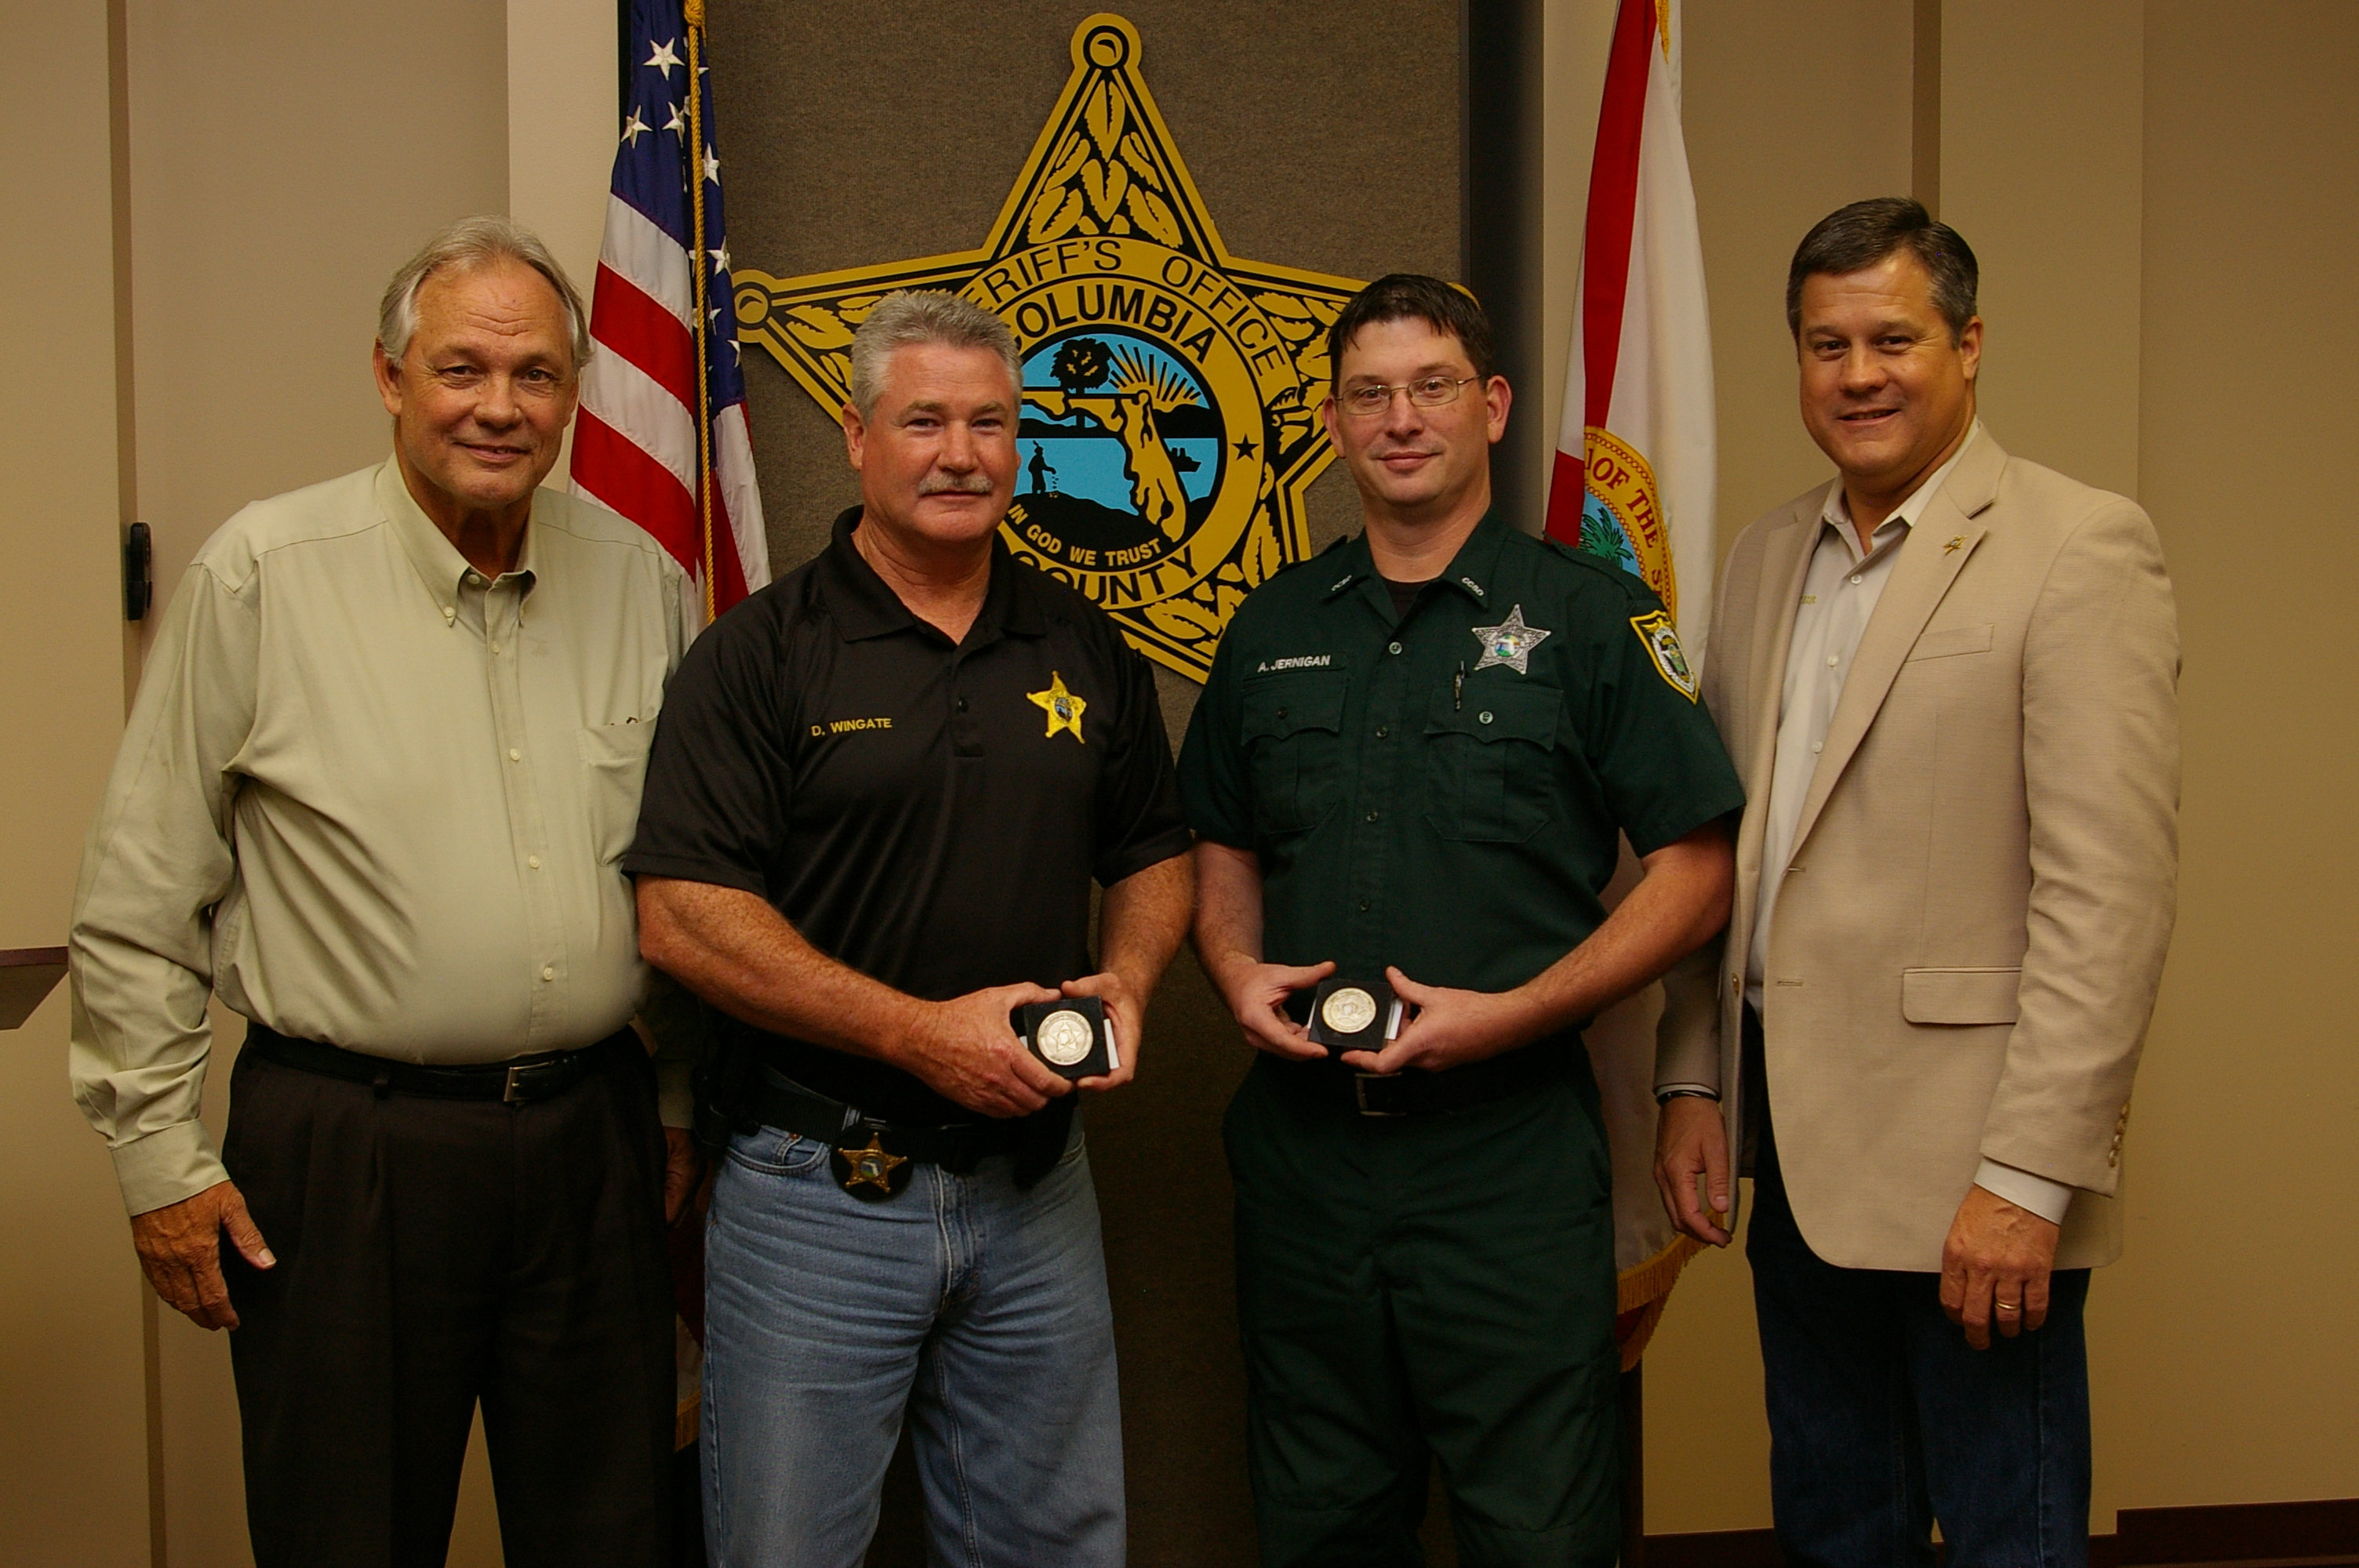 Mike Heller, Captain David Wingate, Detention Deputy Adam Jernigan, and Sheriff Mark Hunter (Ms. Holly Castagna was not available at time of photo)